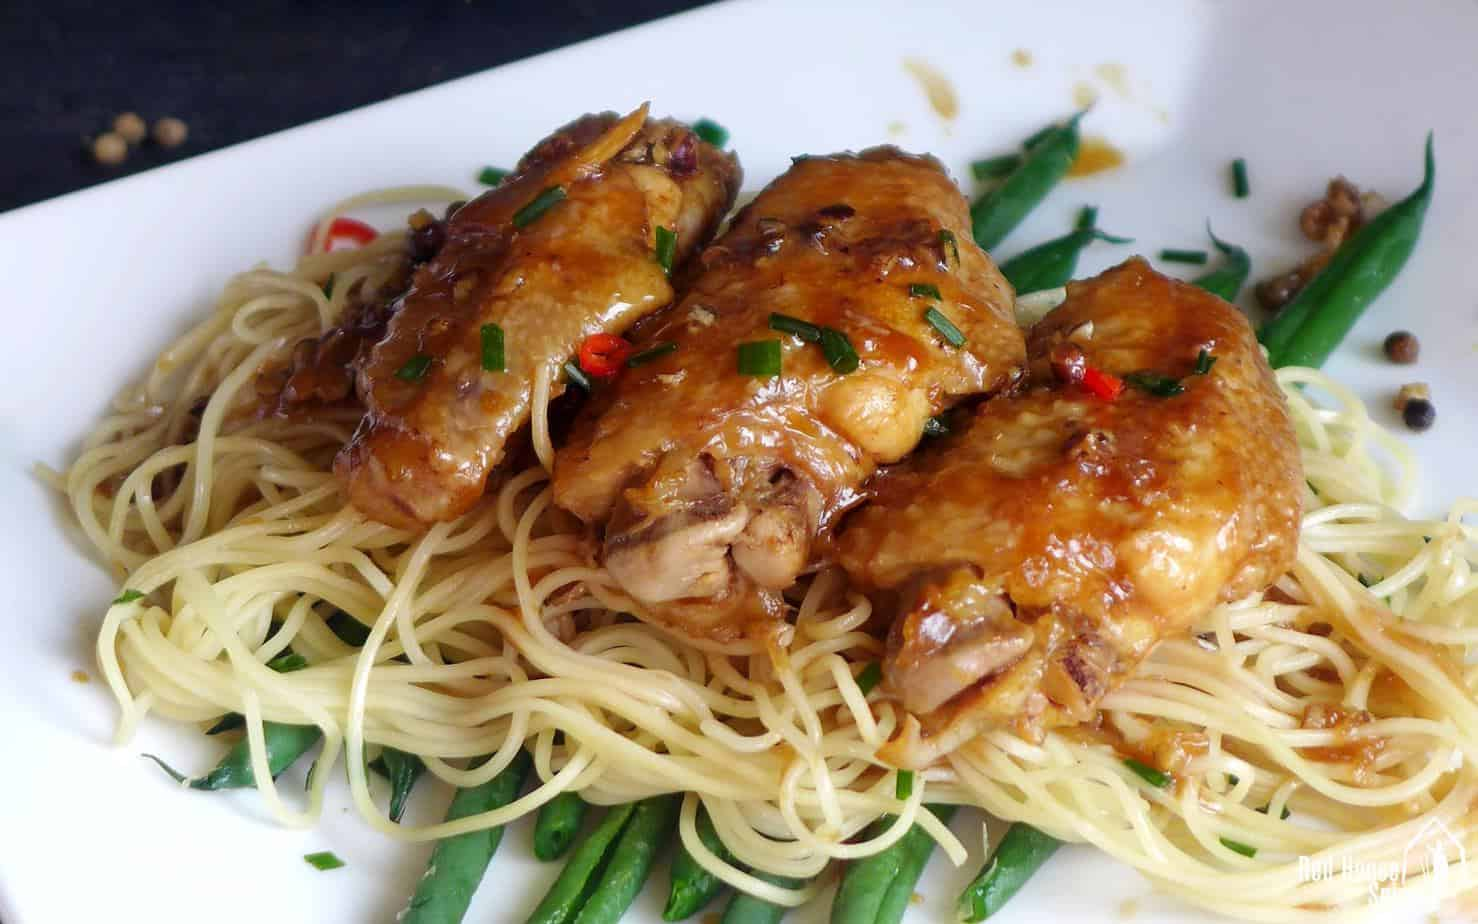 Chicken wings on noodles